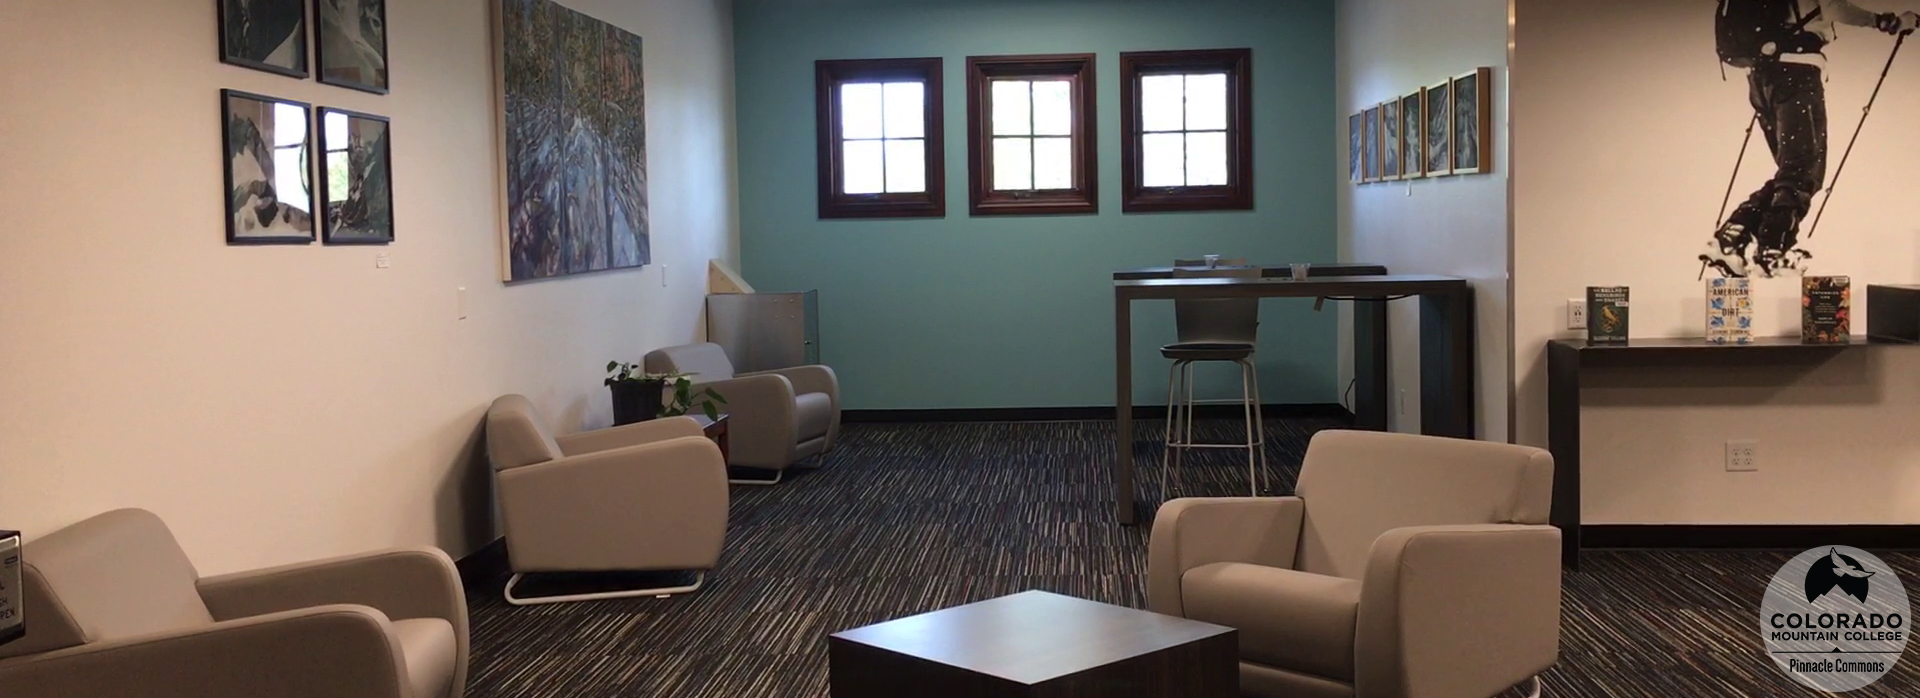 Sitting area in the Leadville Learning Commons